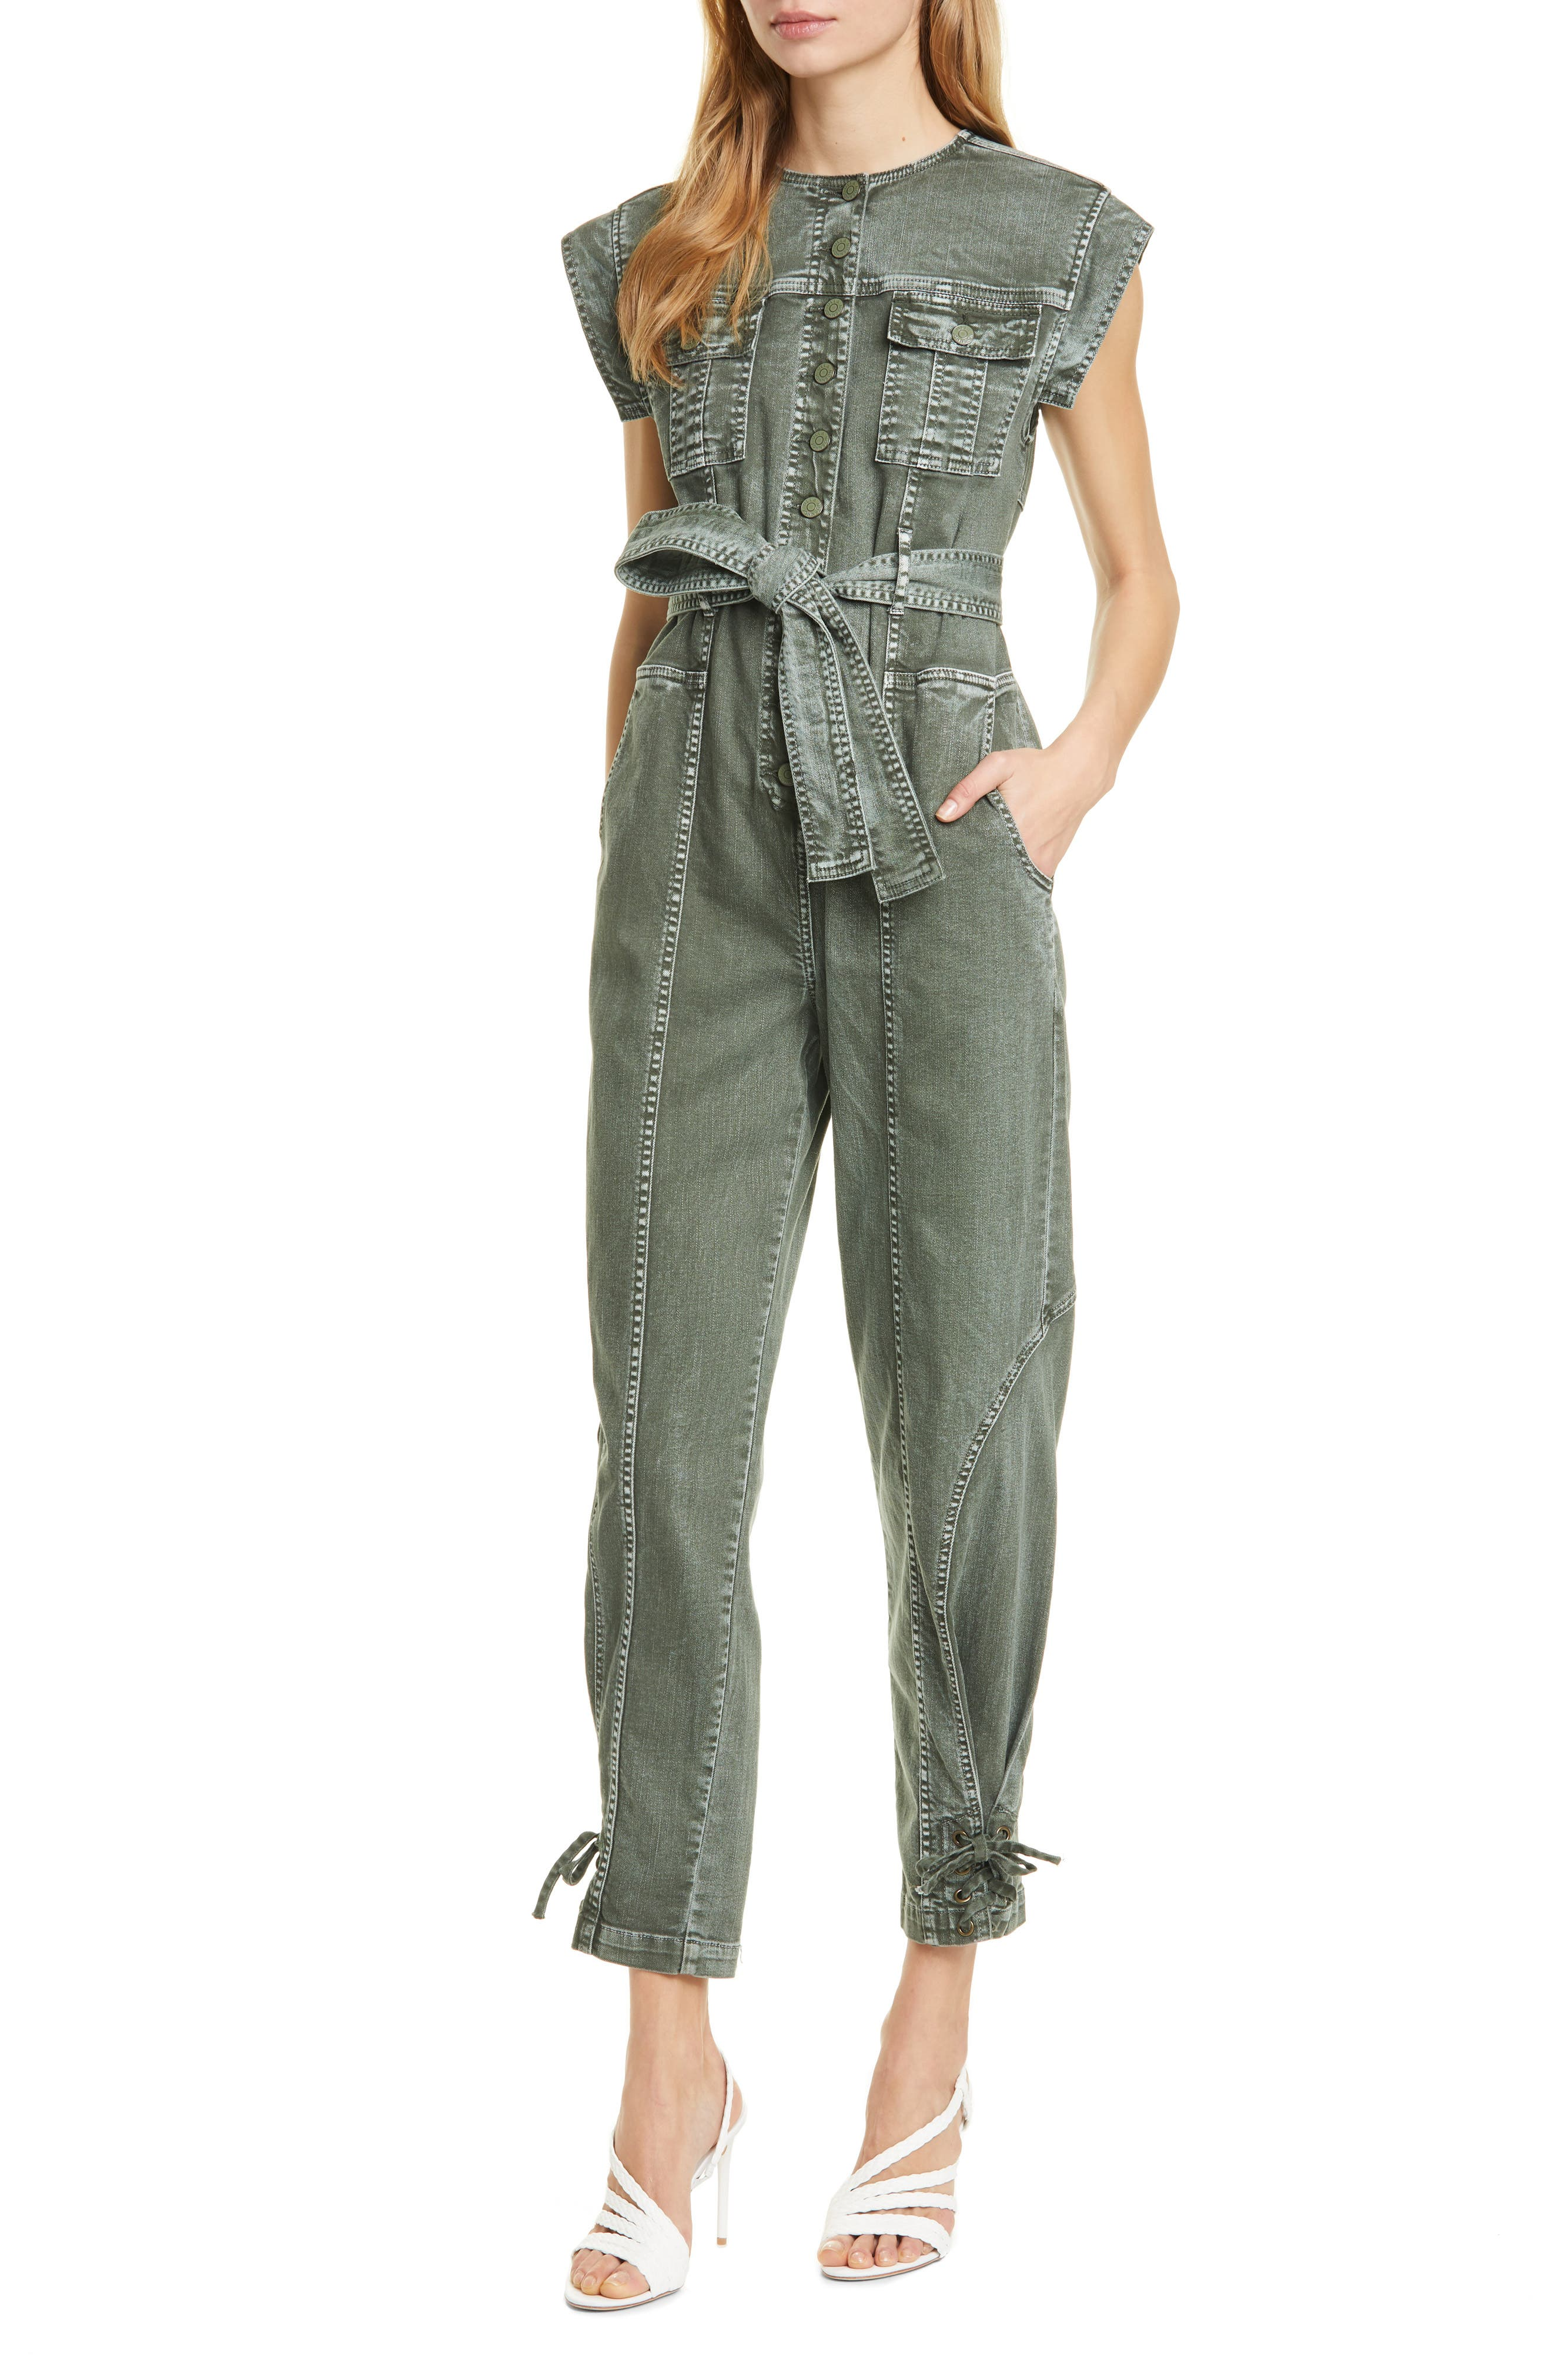 Hailys Donna Jumpsuit Overall Onepiece Playsuit Chic Business COLOR MIX NUOVO